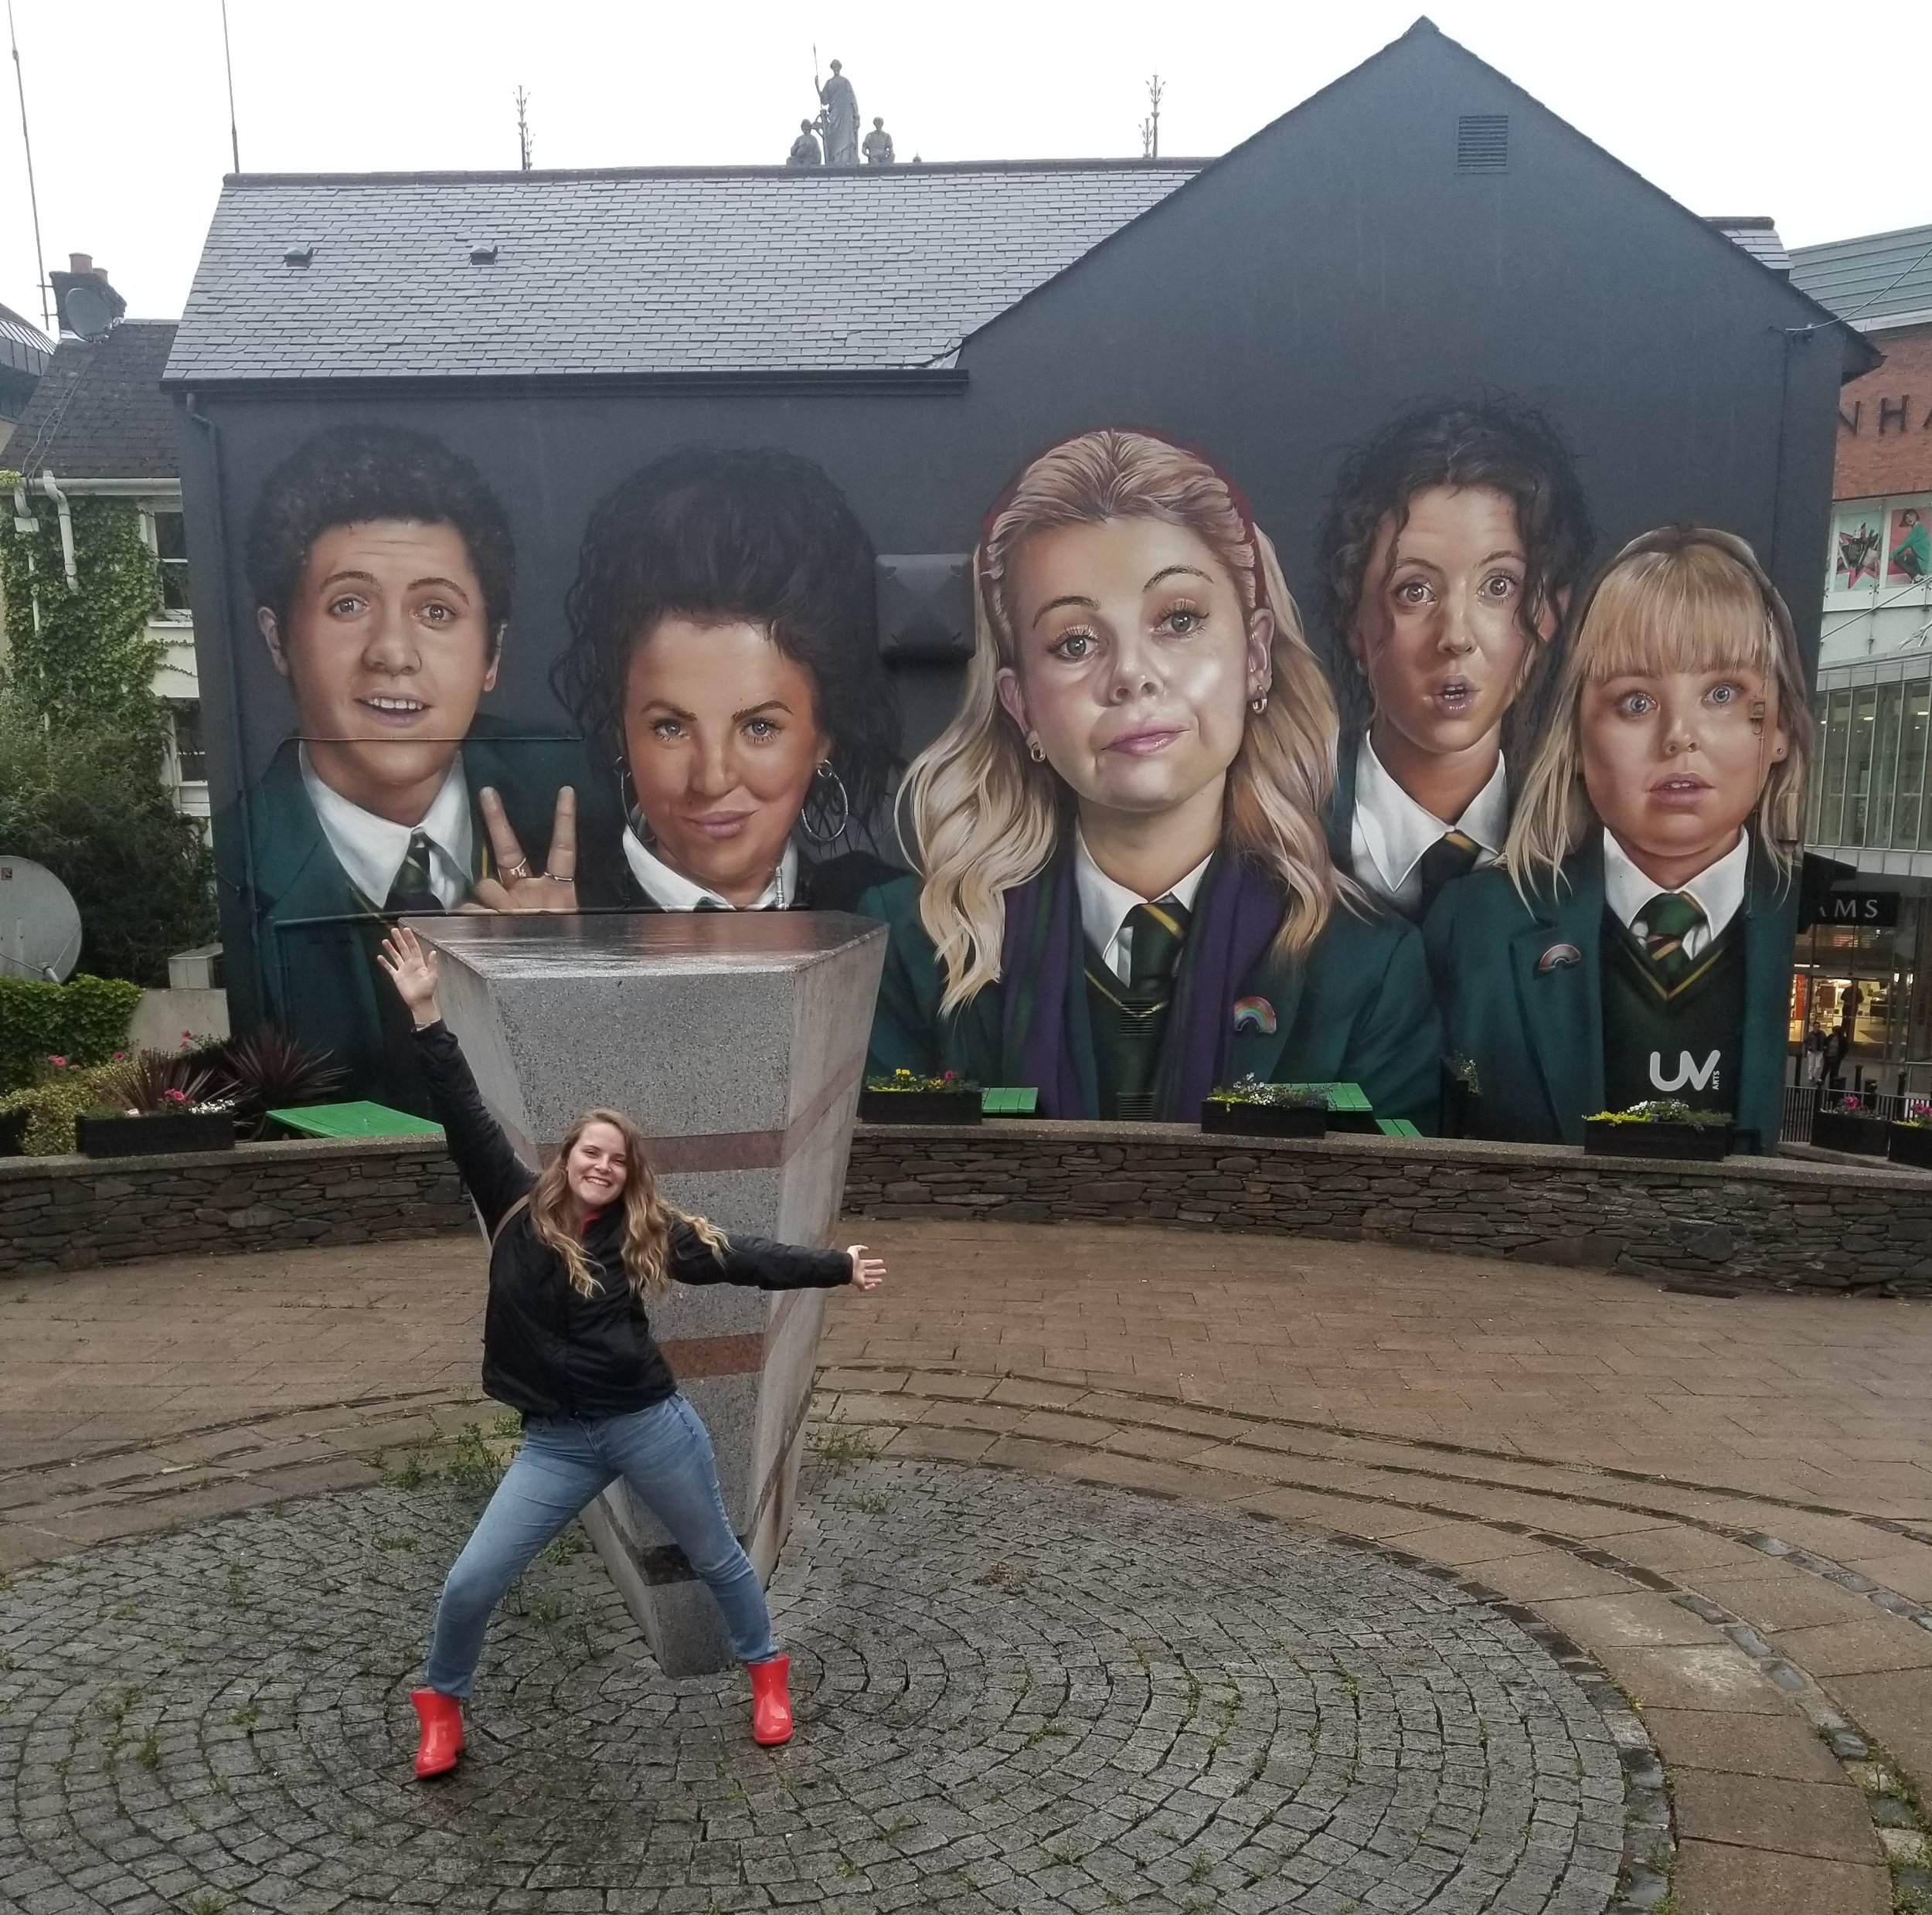 At the end of a very emotional, tiring day, a photo with a mural of one of your favorite shows is a must! Visiting Derry-Londonderry was an amazing way to conclude my time on the island of Ireland. Photo credit: Morrill, 2019